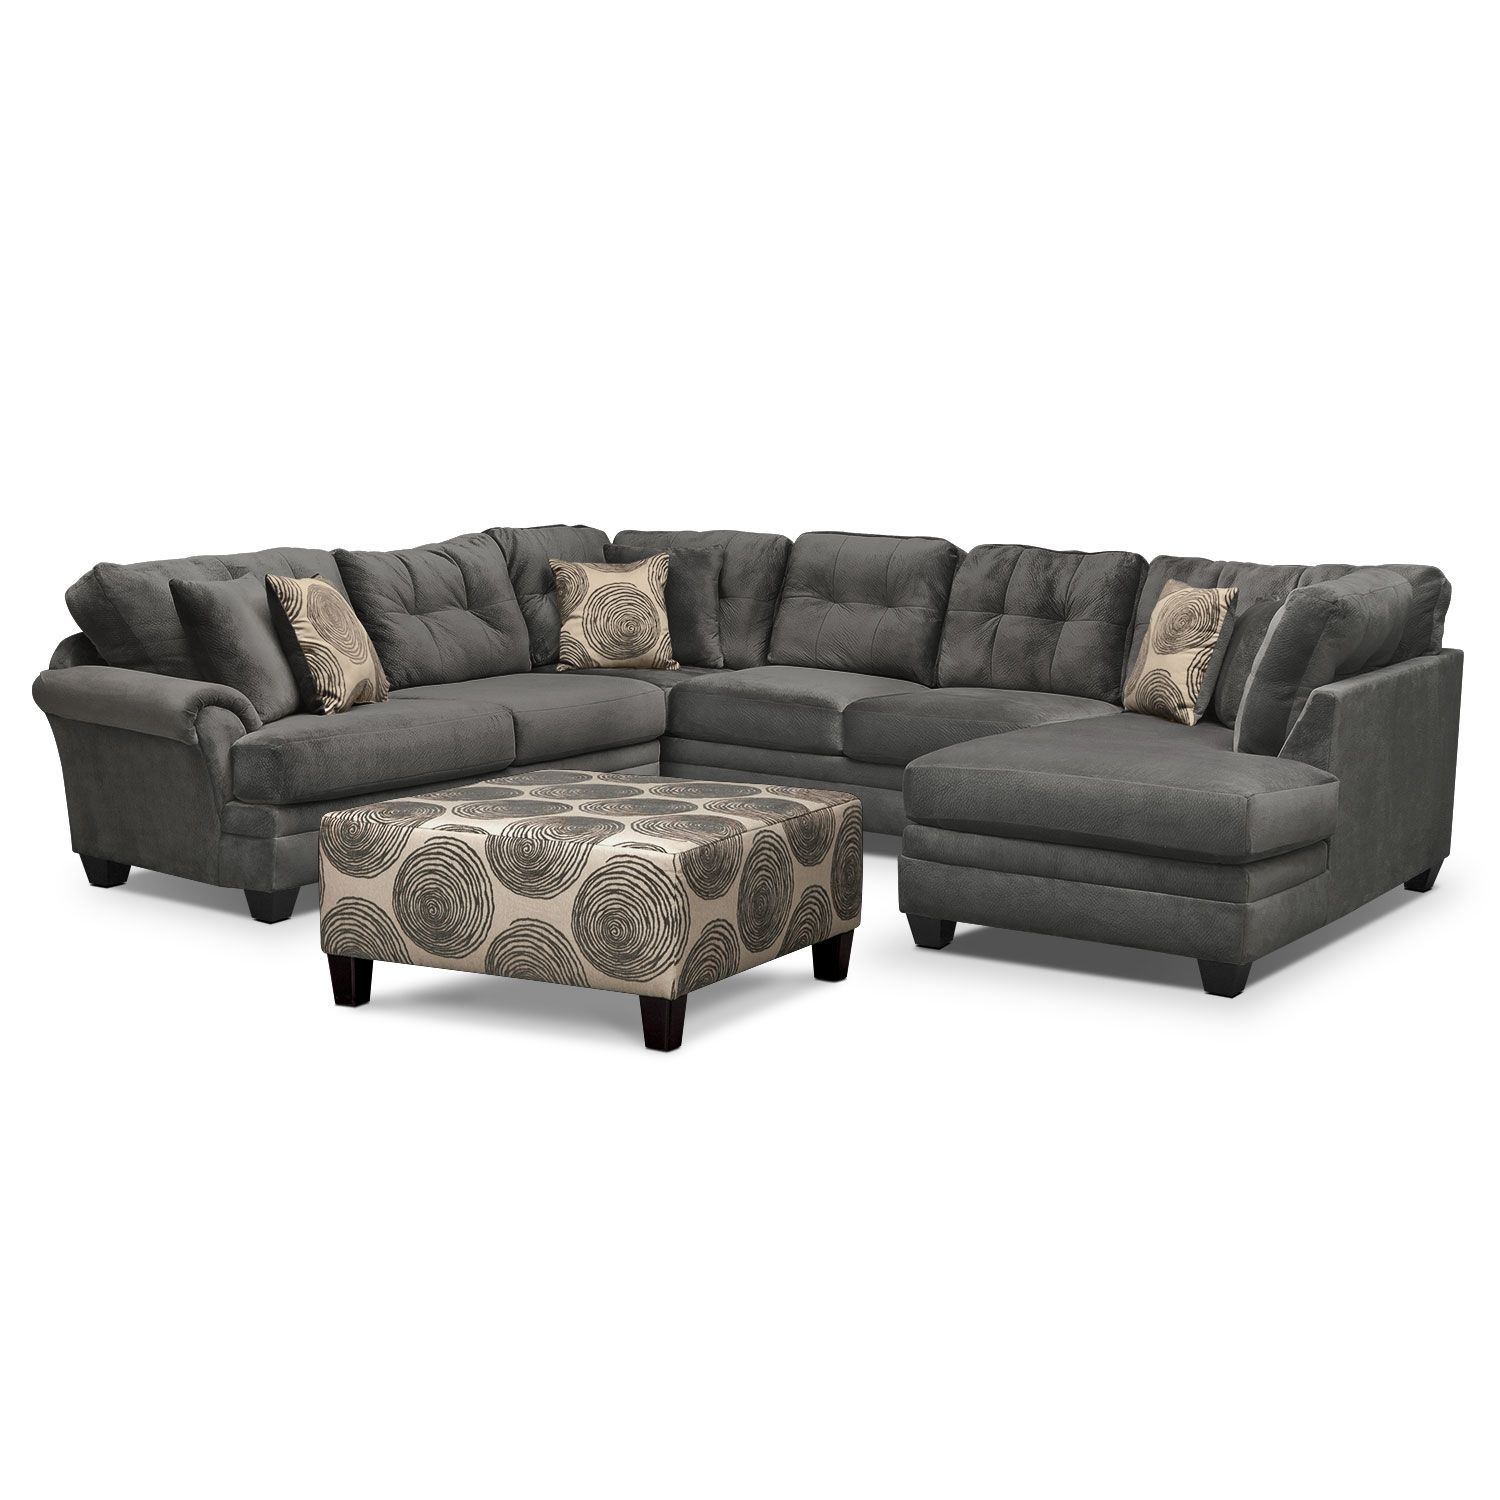 Living room furniture cordoba 2 pc sectional - Living Room Furniture Cordelle 3 Piece Sectional And Cocktail Ottoman Set